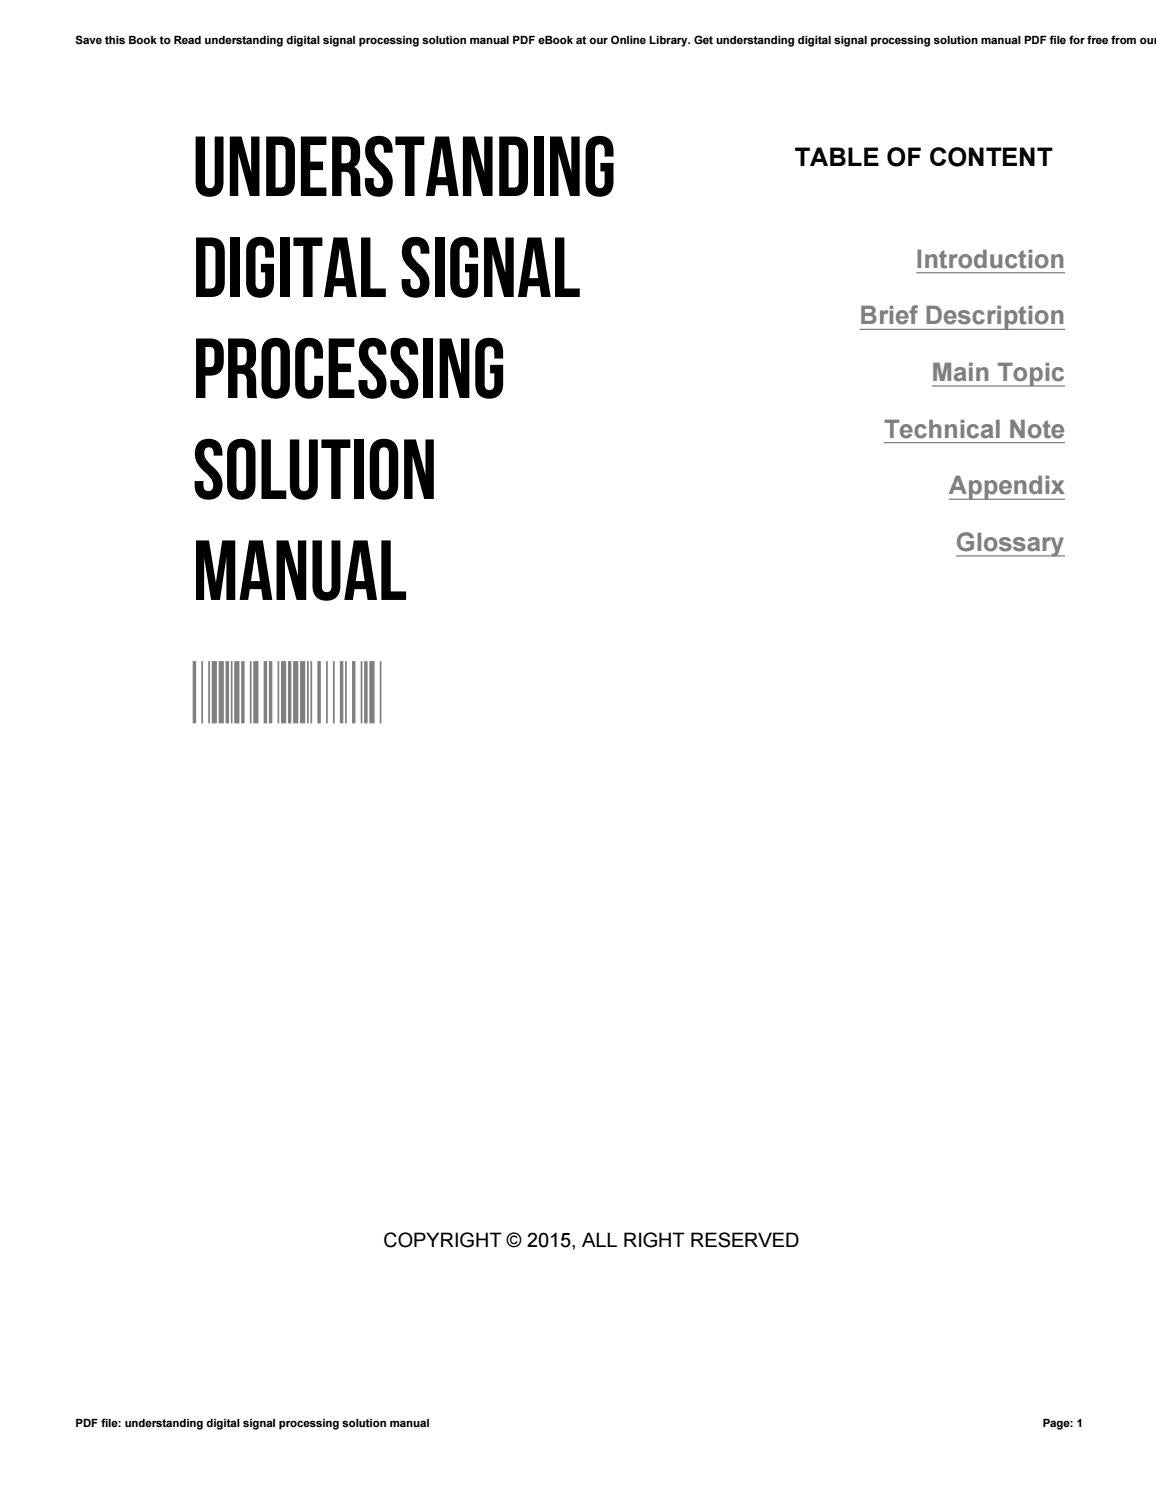 Understanding digital signal processing solution manual by